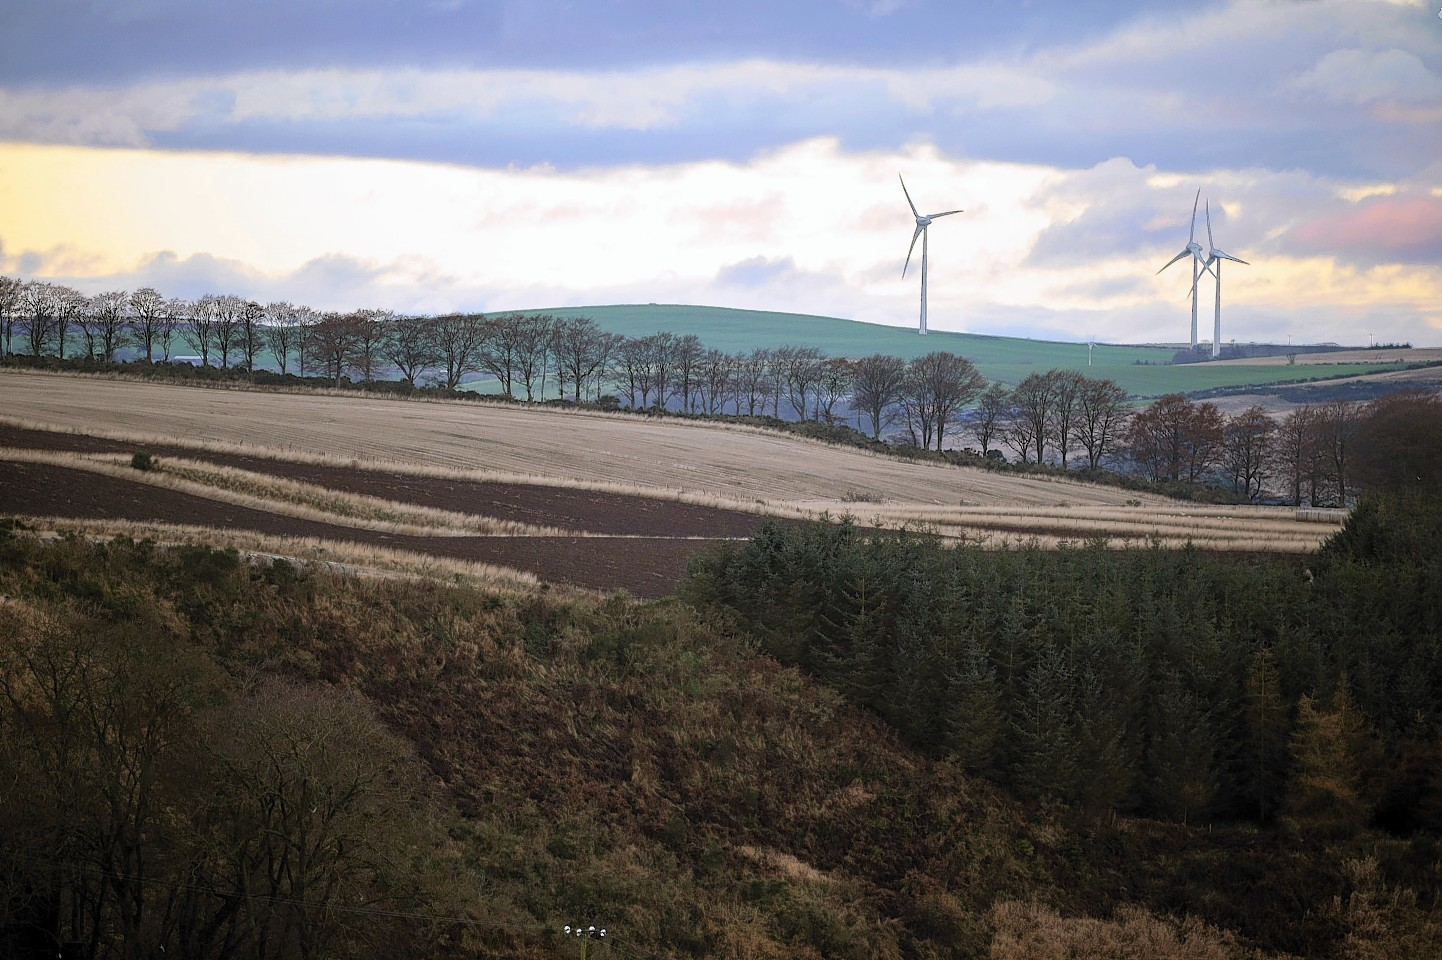 The site of the proposed turbines